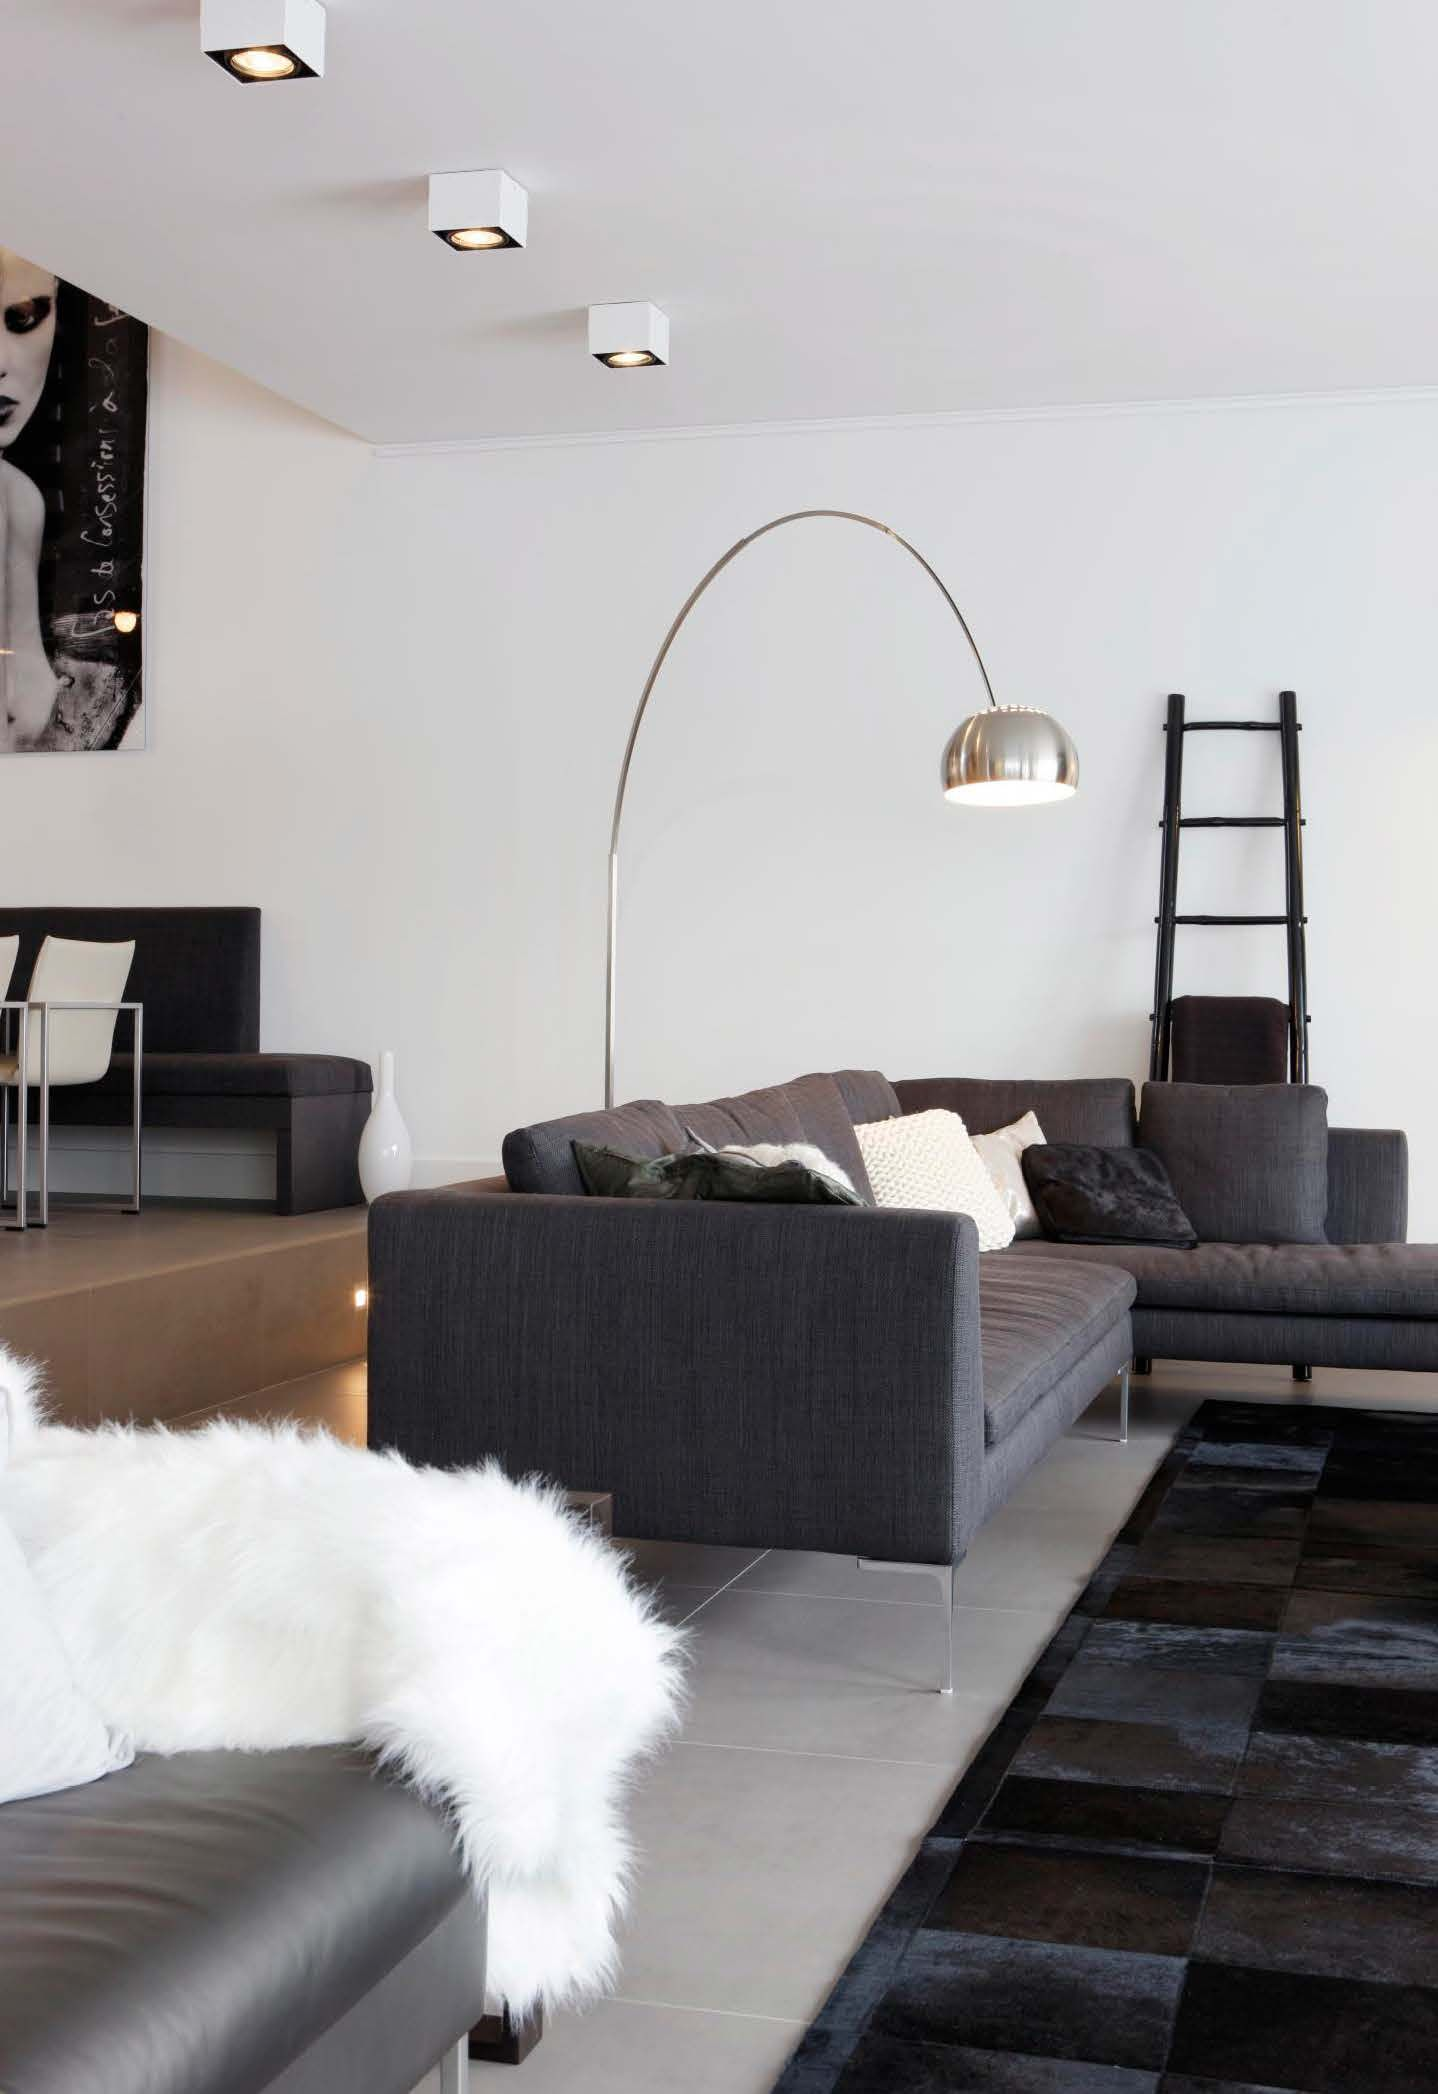 LOOK OUT SINGLE Ceiling Surface Mounted Lighting Solutions By - Bedroom light fittings uk